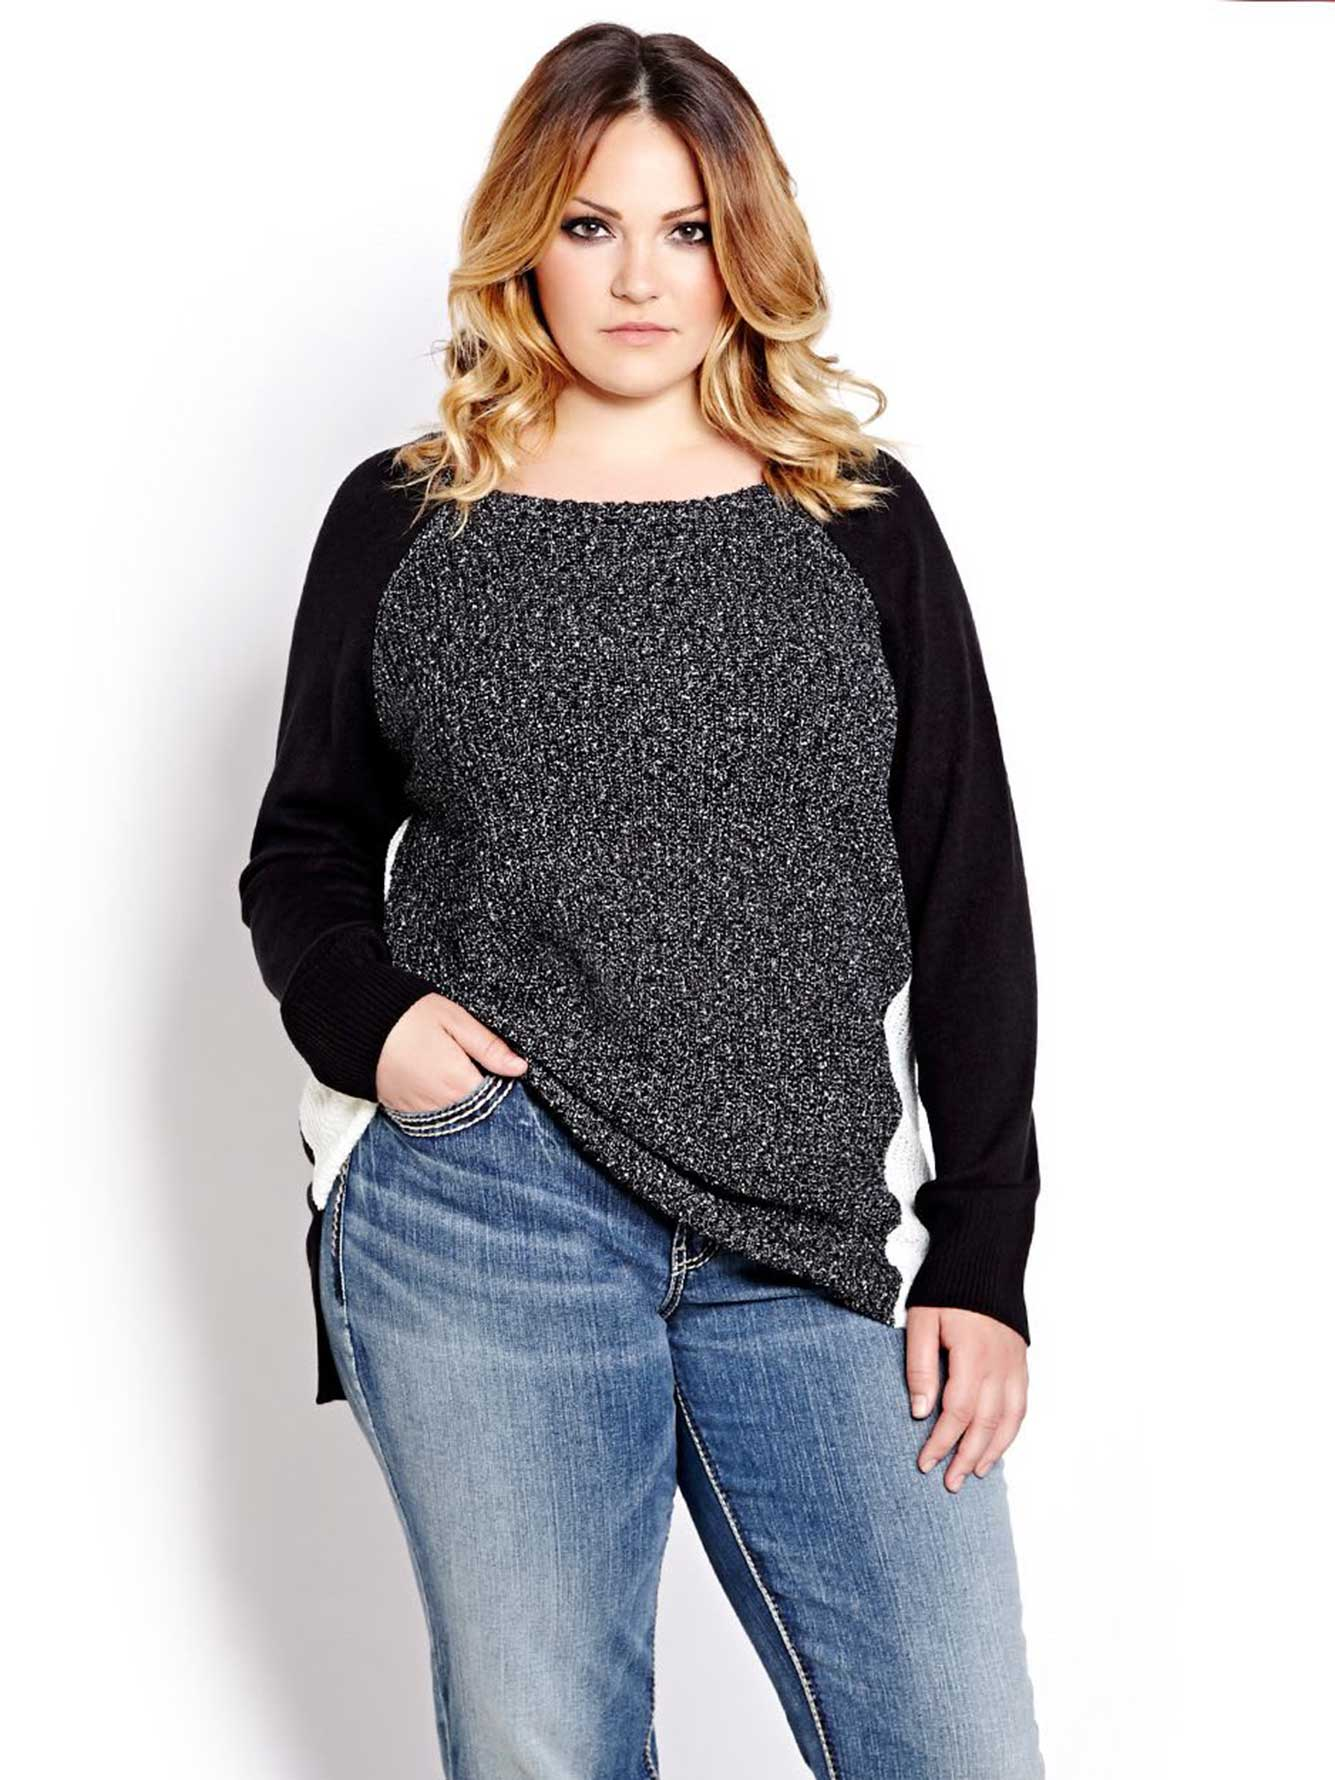 799017ec1a9 Fashionable & Trendy Plus Size Clothing | Addition Elle